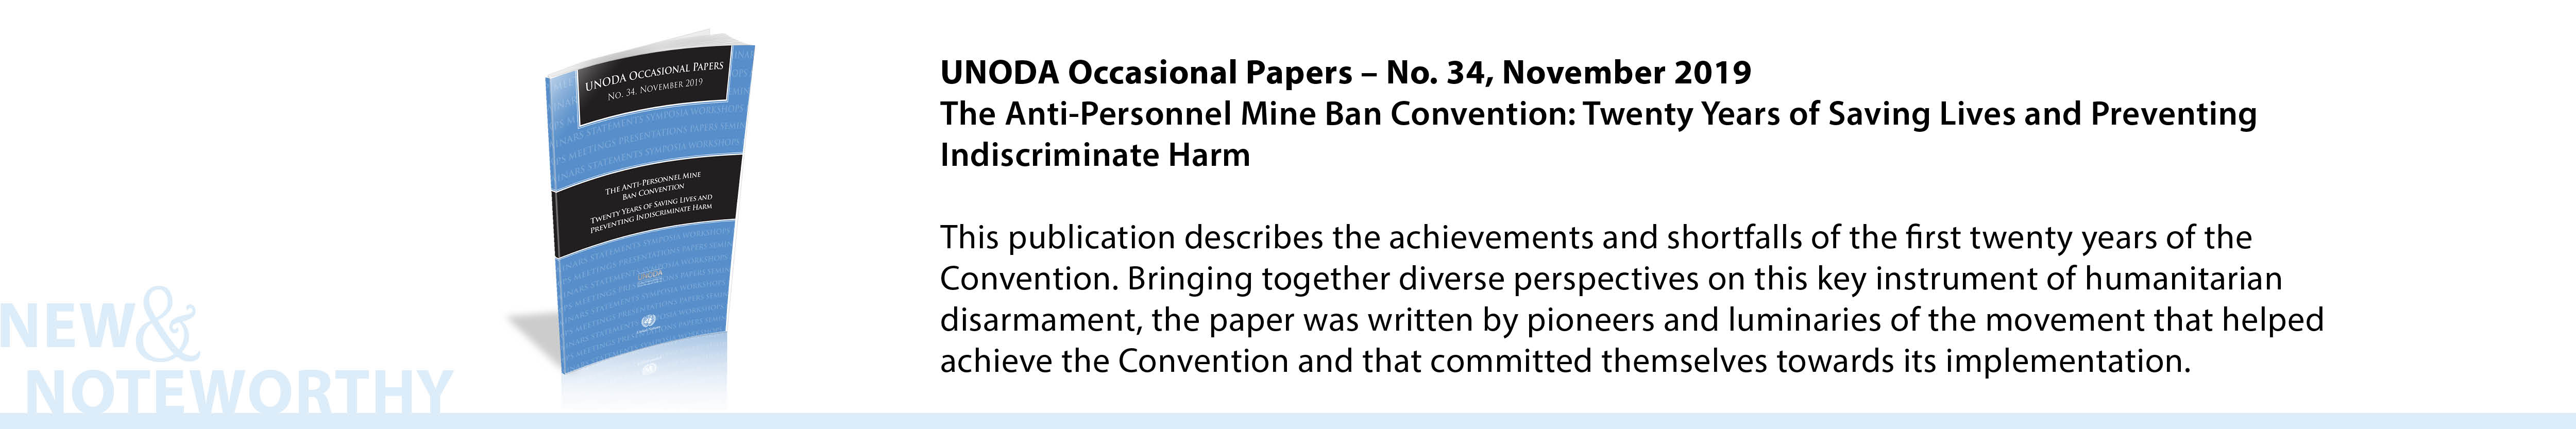 UNODA Occasional Papers, No. 34, November 2019 - The Anti-Personnel Mine Ban Convention: Twenty Years of Saving Lives and Preventing Indiscriminate Harm -This publication describes the achievements and shortfalls of the first twenty years of the Convention. Bringing together diverse perspectives on this key instrument of humanitarian disarmament, the paper was written by pioneers and luminaries of the movement that helped achieve the Convention and that committed themselves towards its implementation.